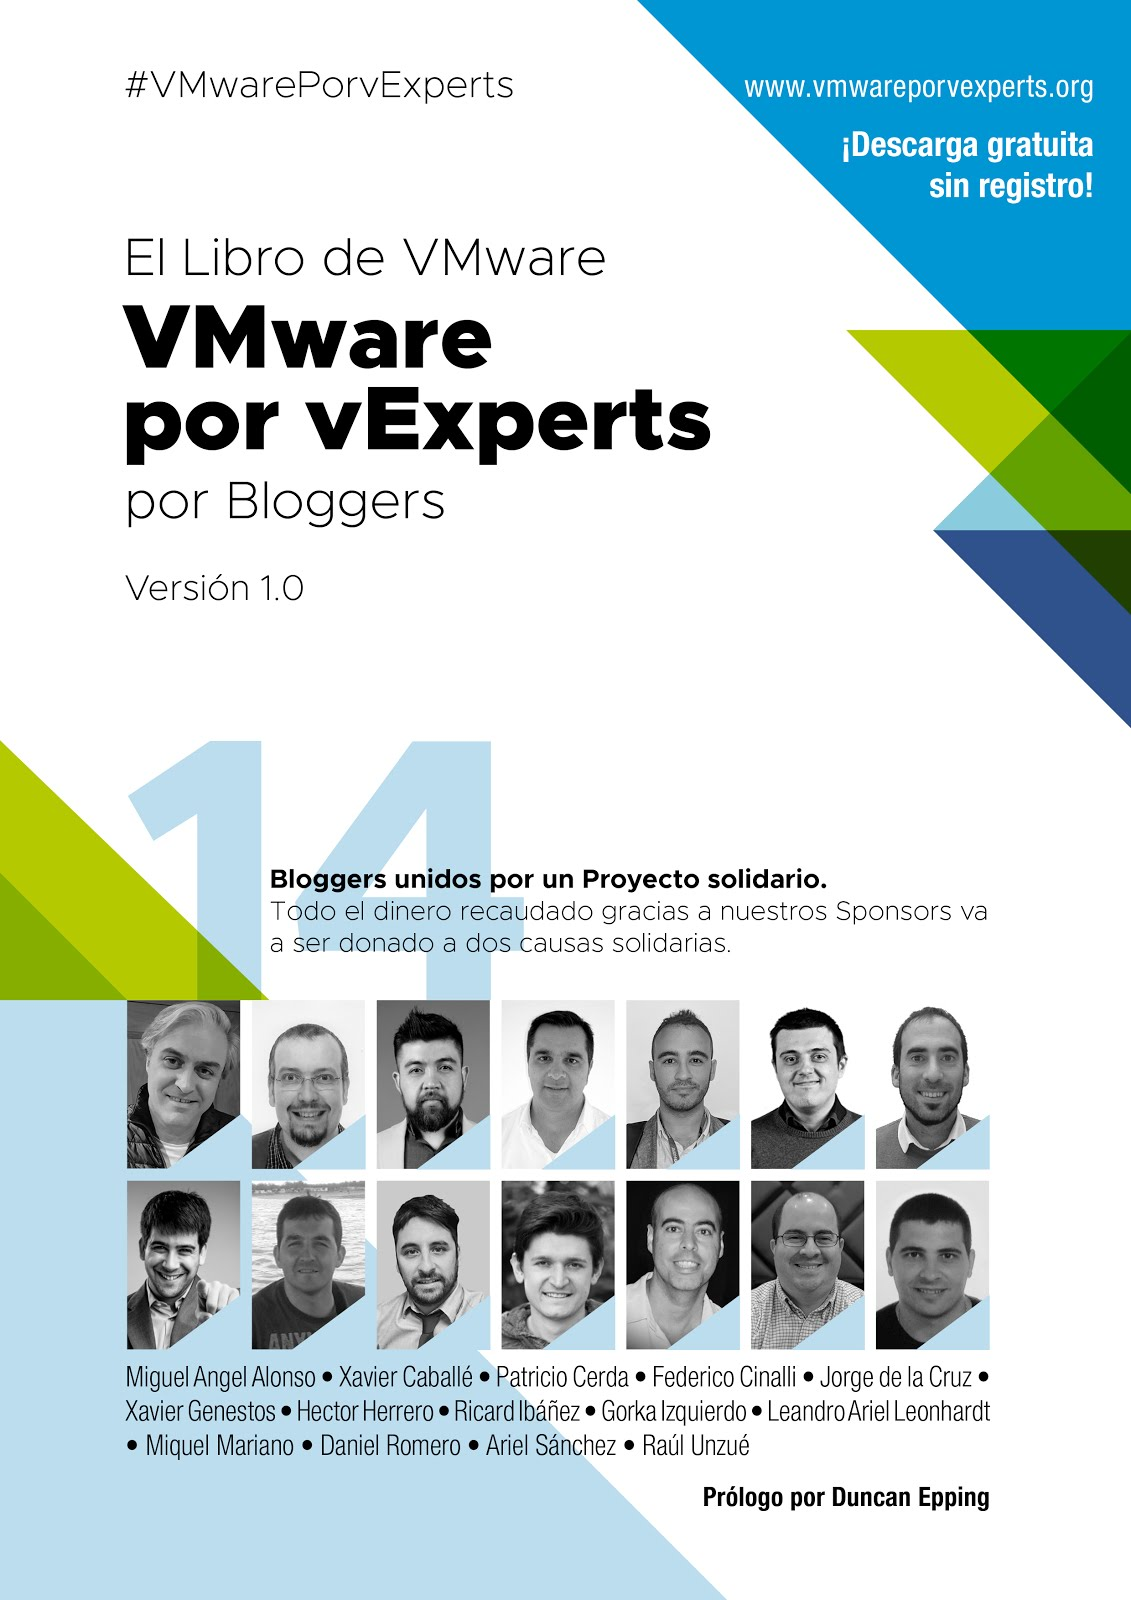 eBook VMware por vExperts